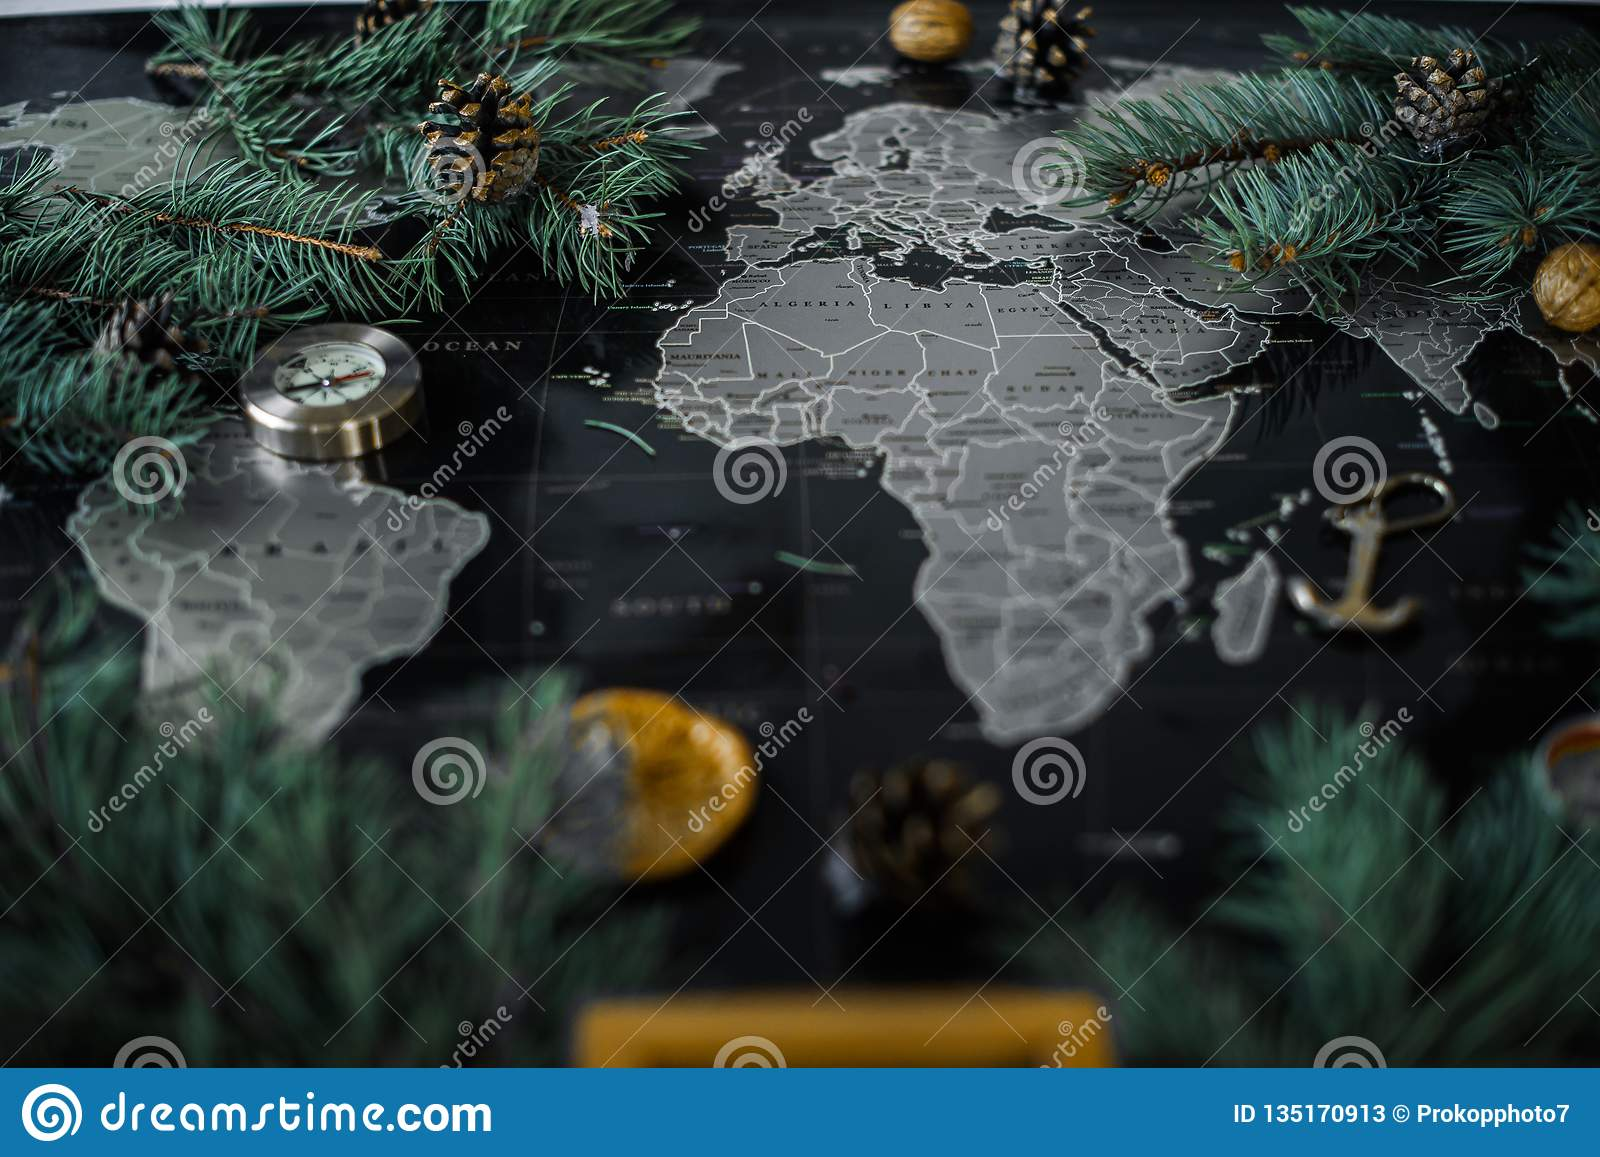 Christmas tree branches and compass on a black map